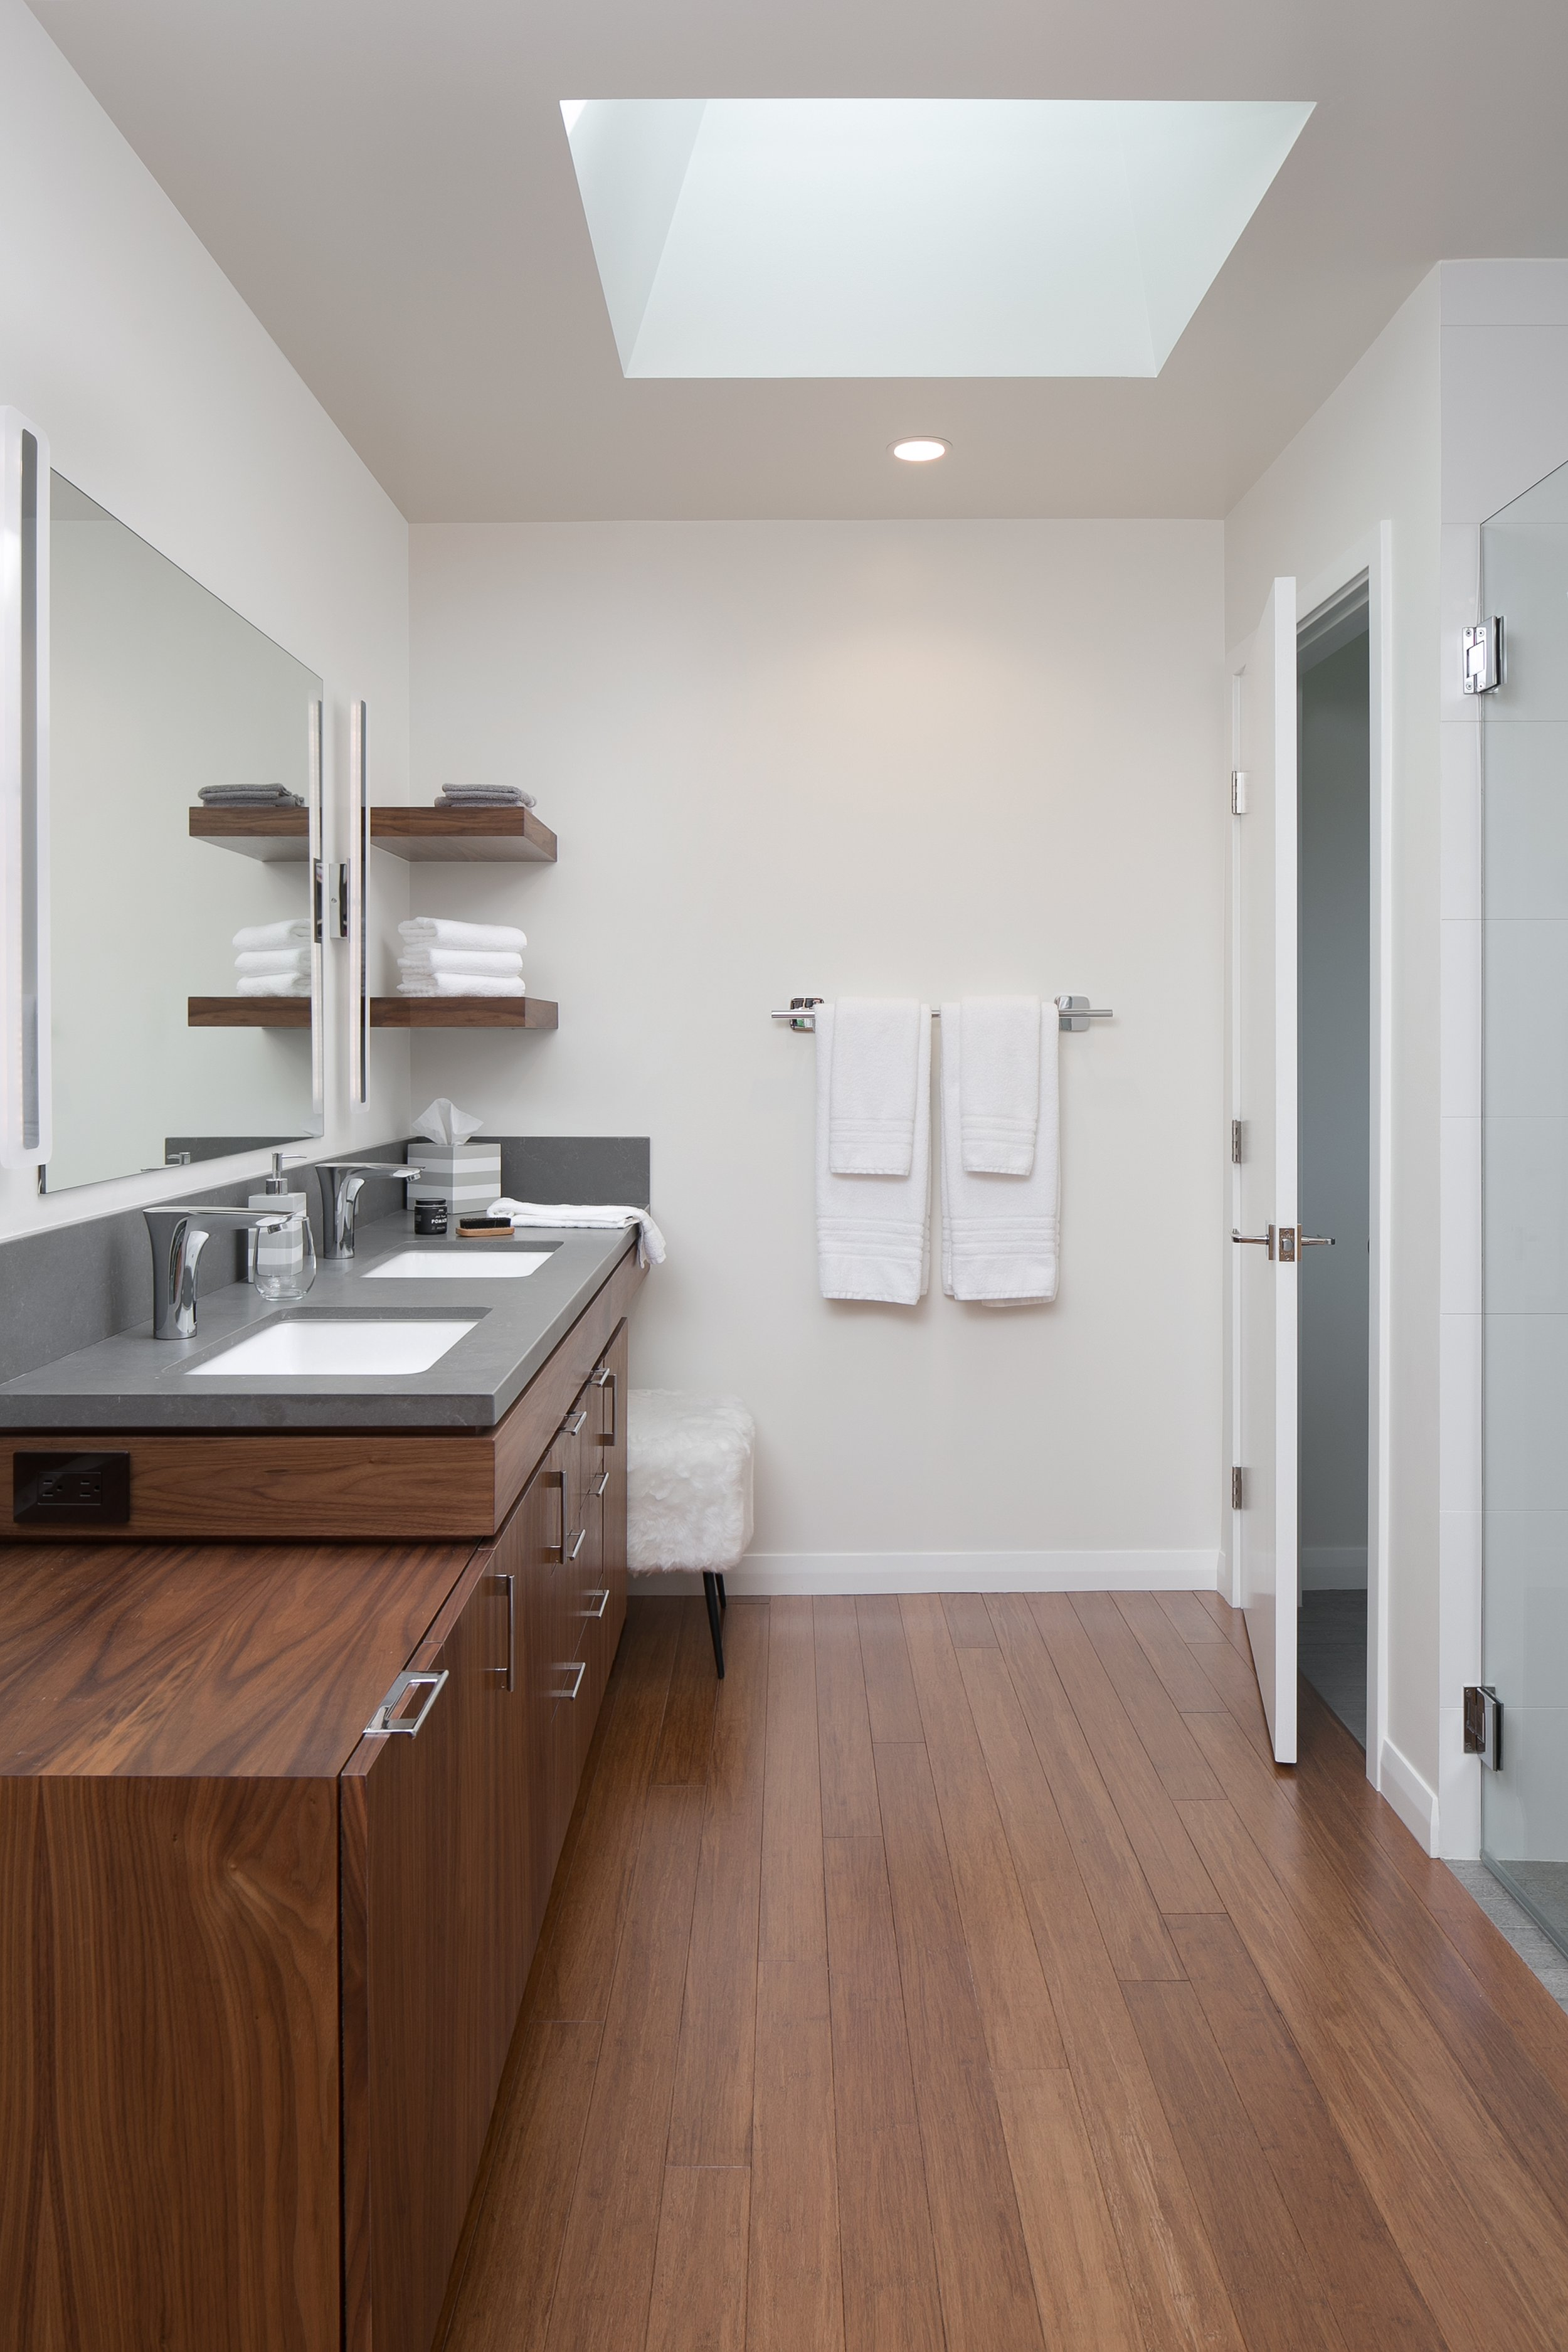 The skylight and white walls illuminate this contemporary ranch master bathroom finished with bamboo flooring and custom walnut cabinetry